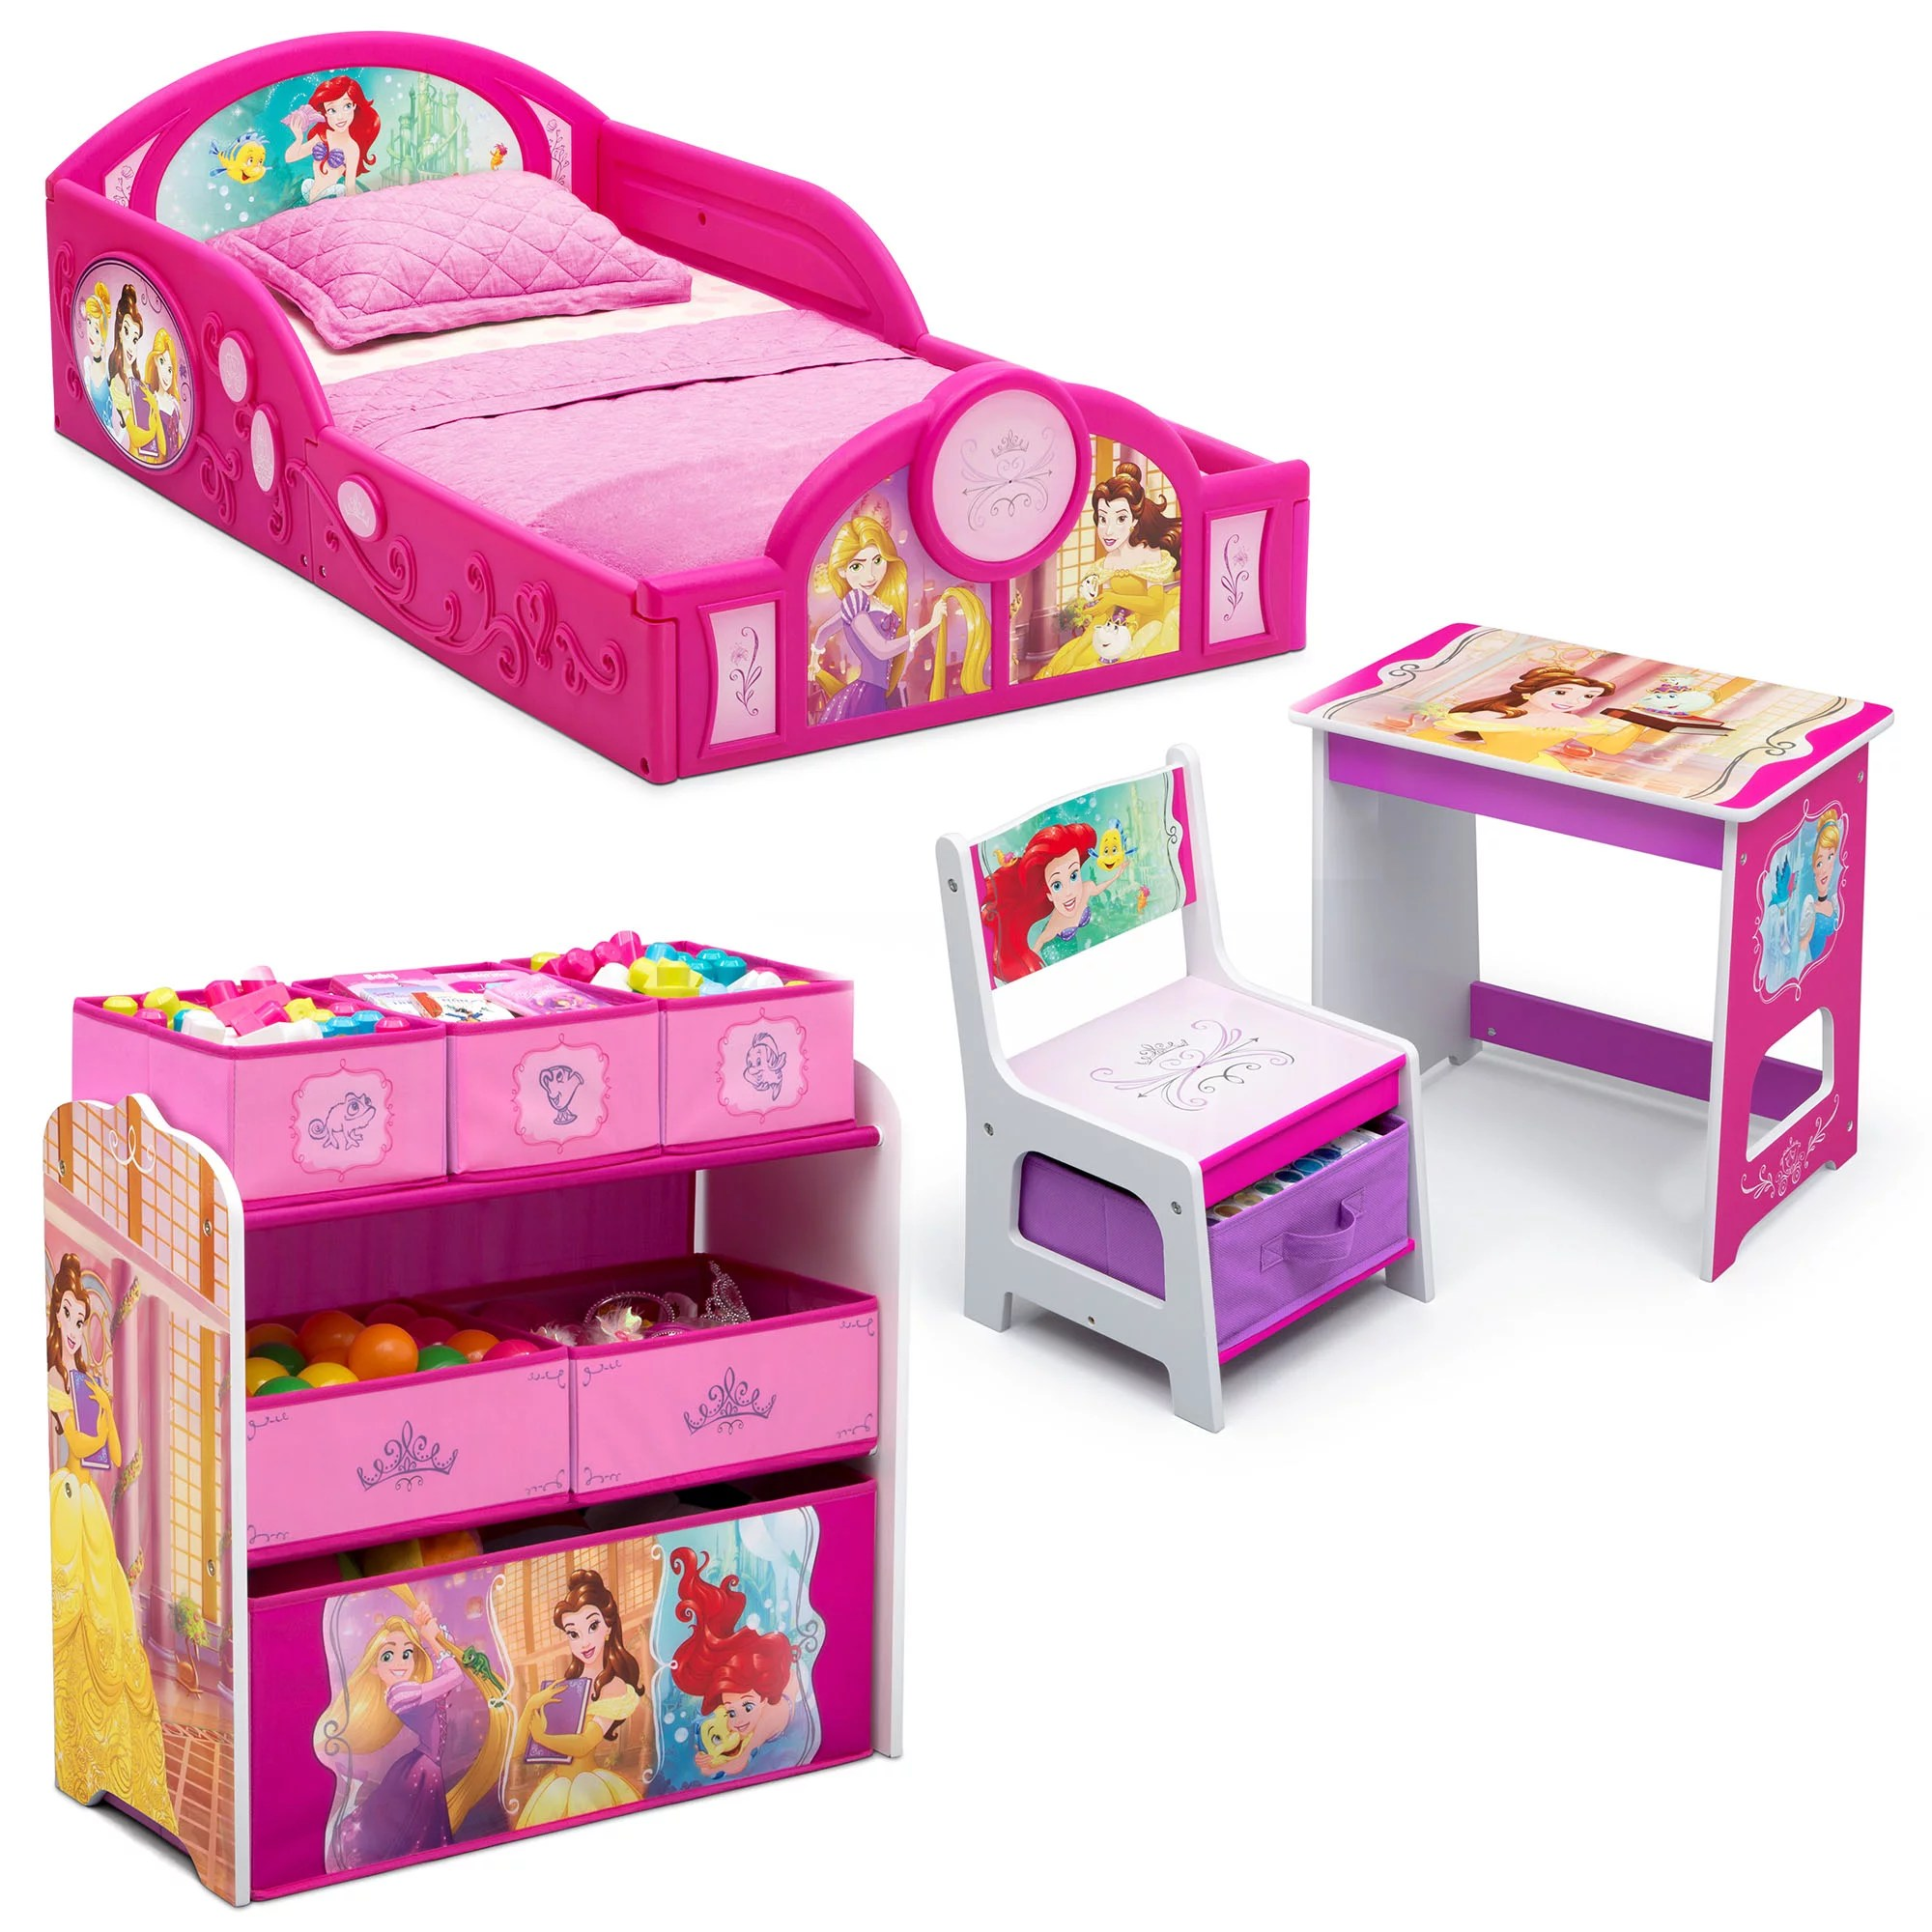 disney princess 4 piece room in a box bedroom set by delta children includes sleep play toddler bed 6 bin design store toy organizer and desk